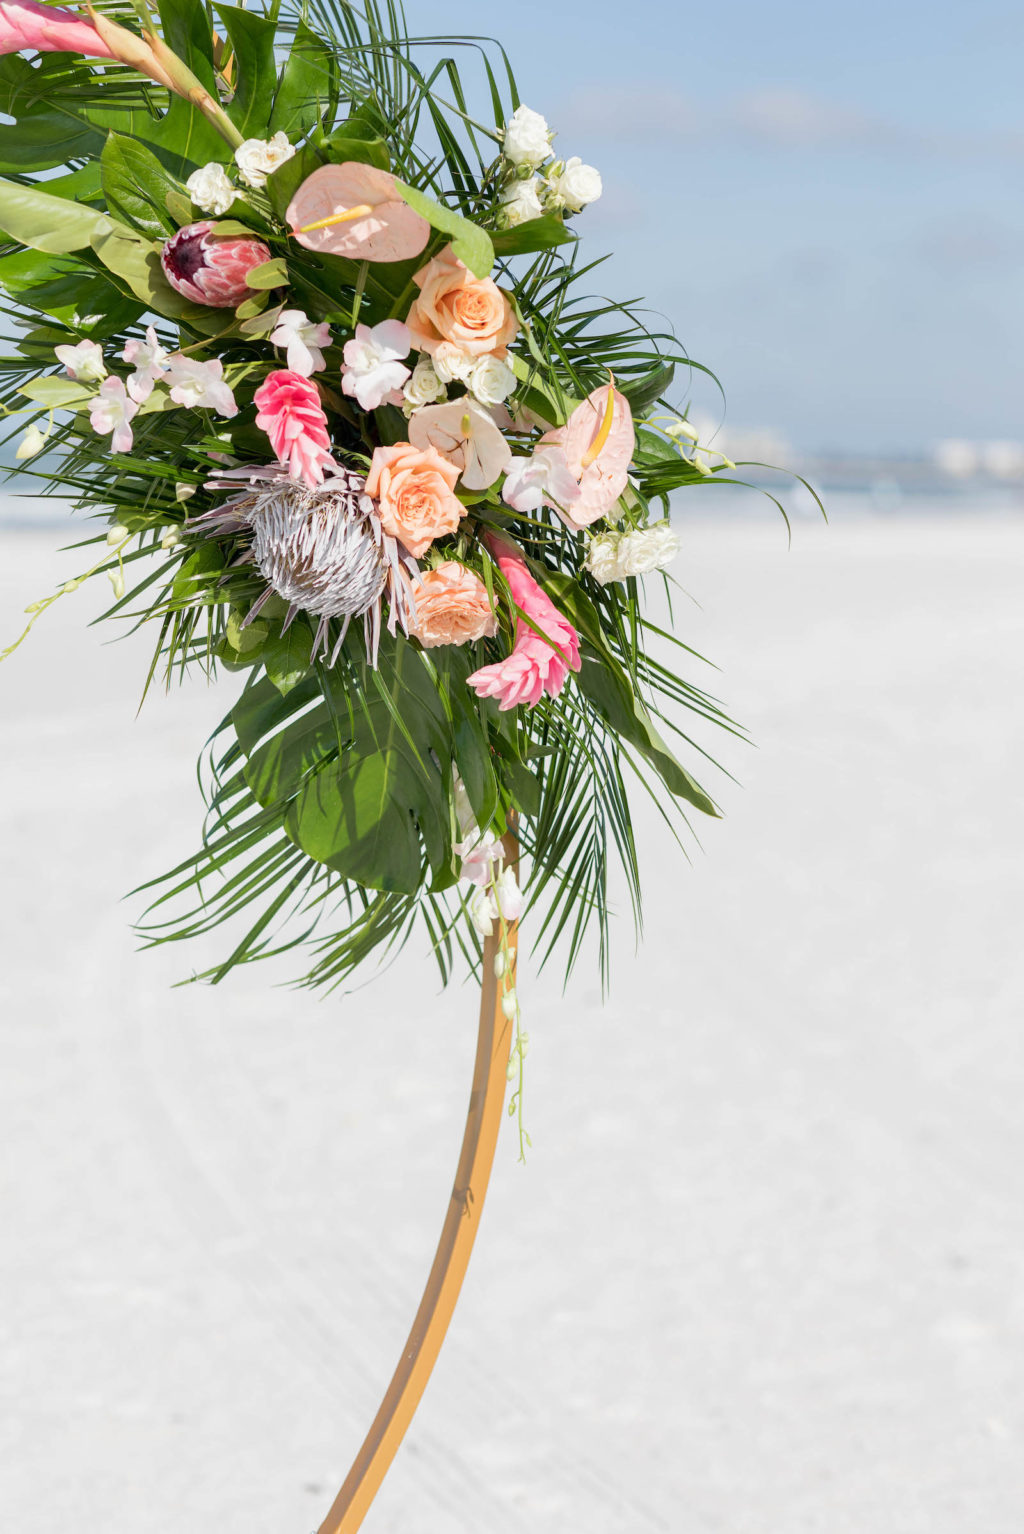 Beach Wedding Round Arch Floral Arrangement Spray | Tropical Wedding Flowers with Monstera Leaf Greenery, Peach Roses, White Anthurium, and Pink Protea